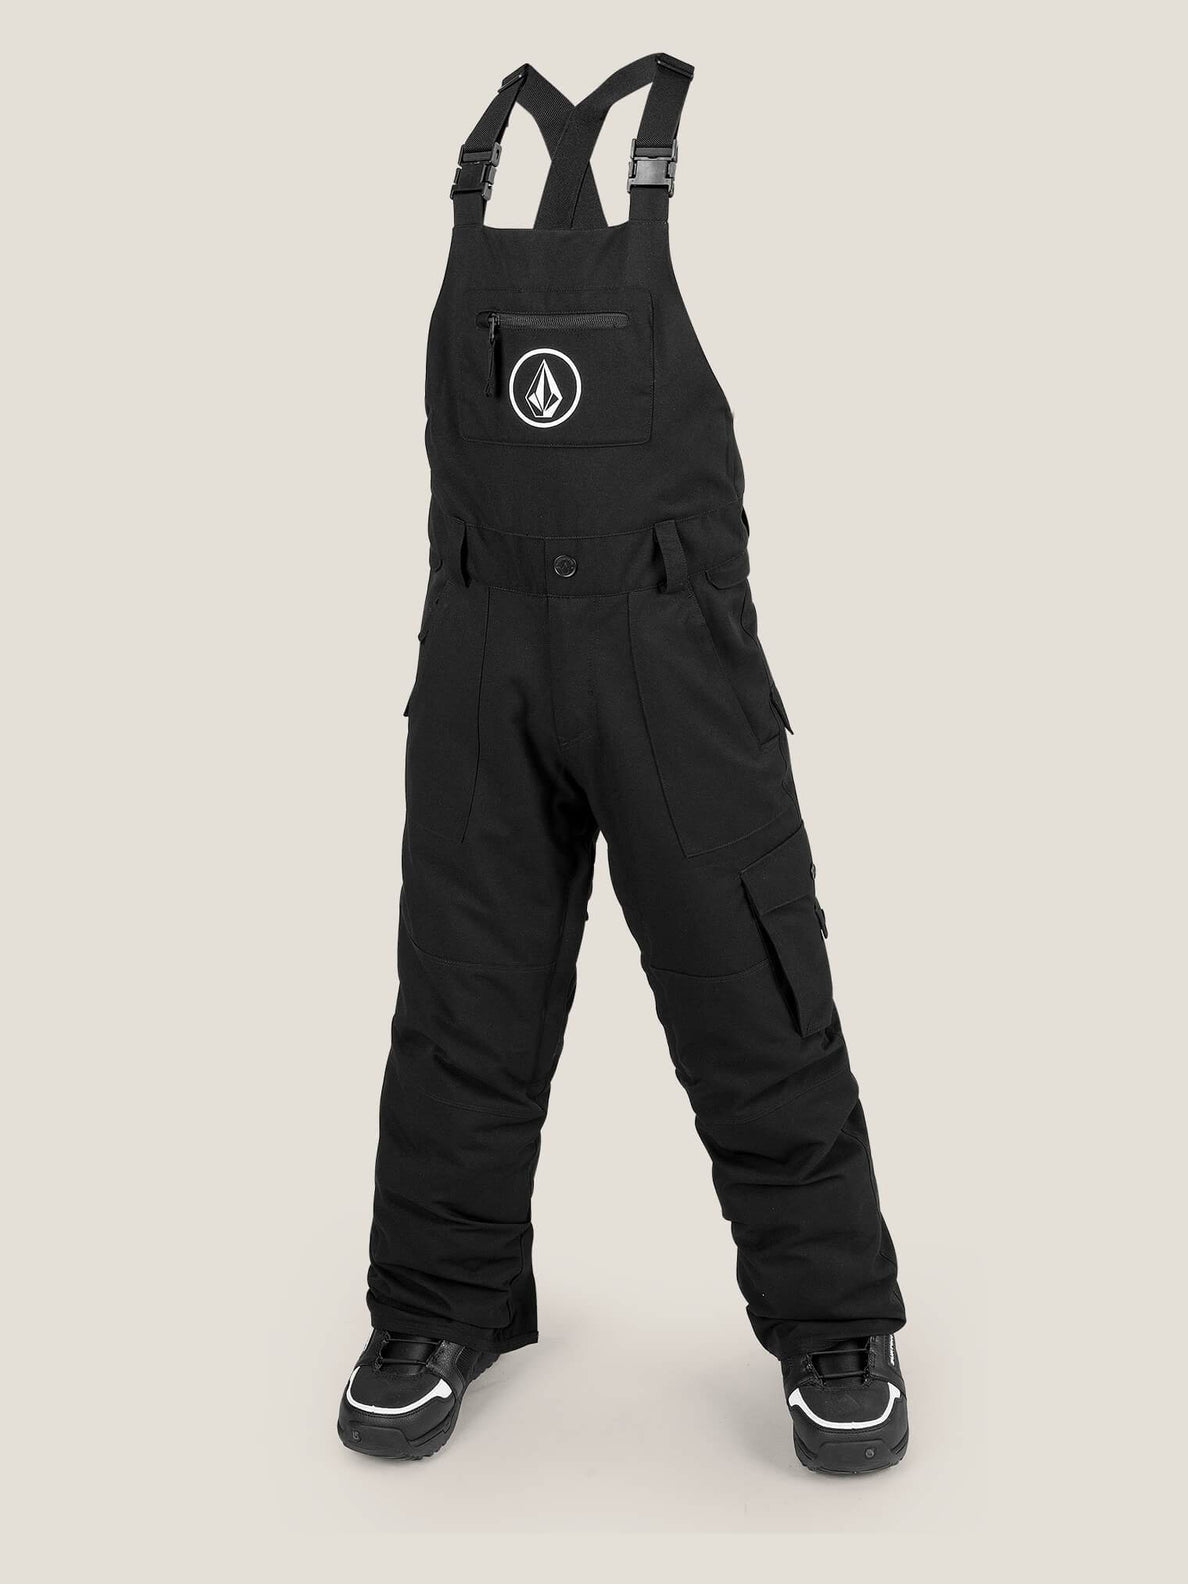 Sutton Insulated Overall In Black, Front View